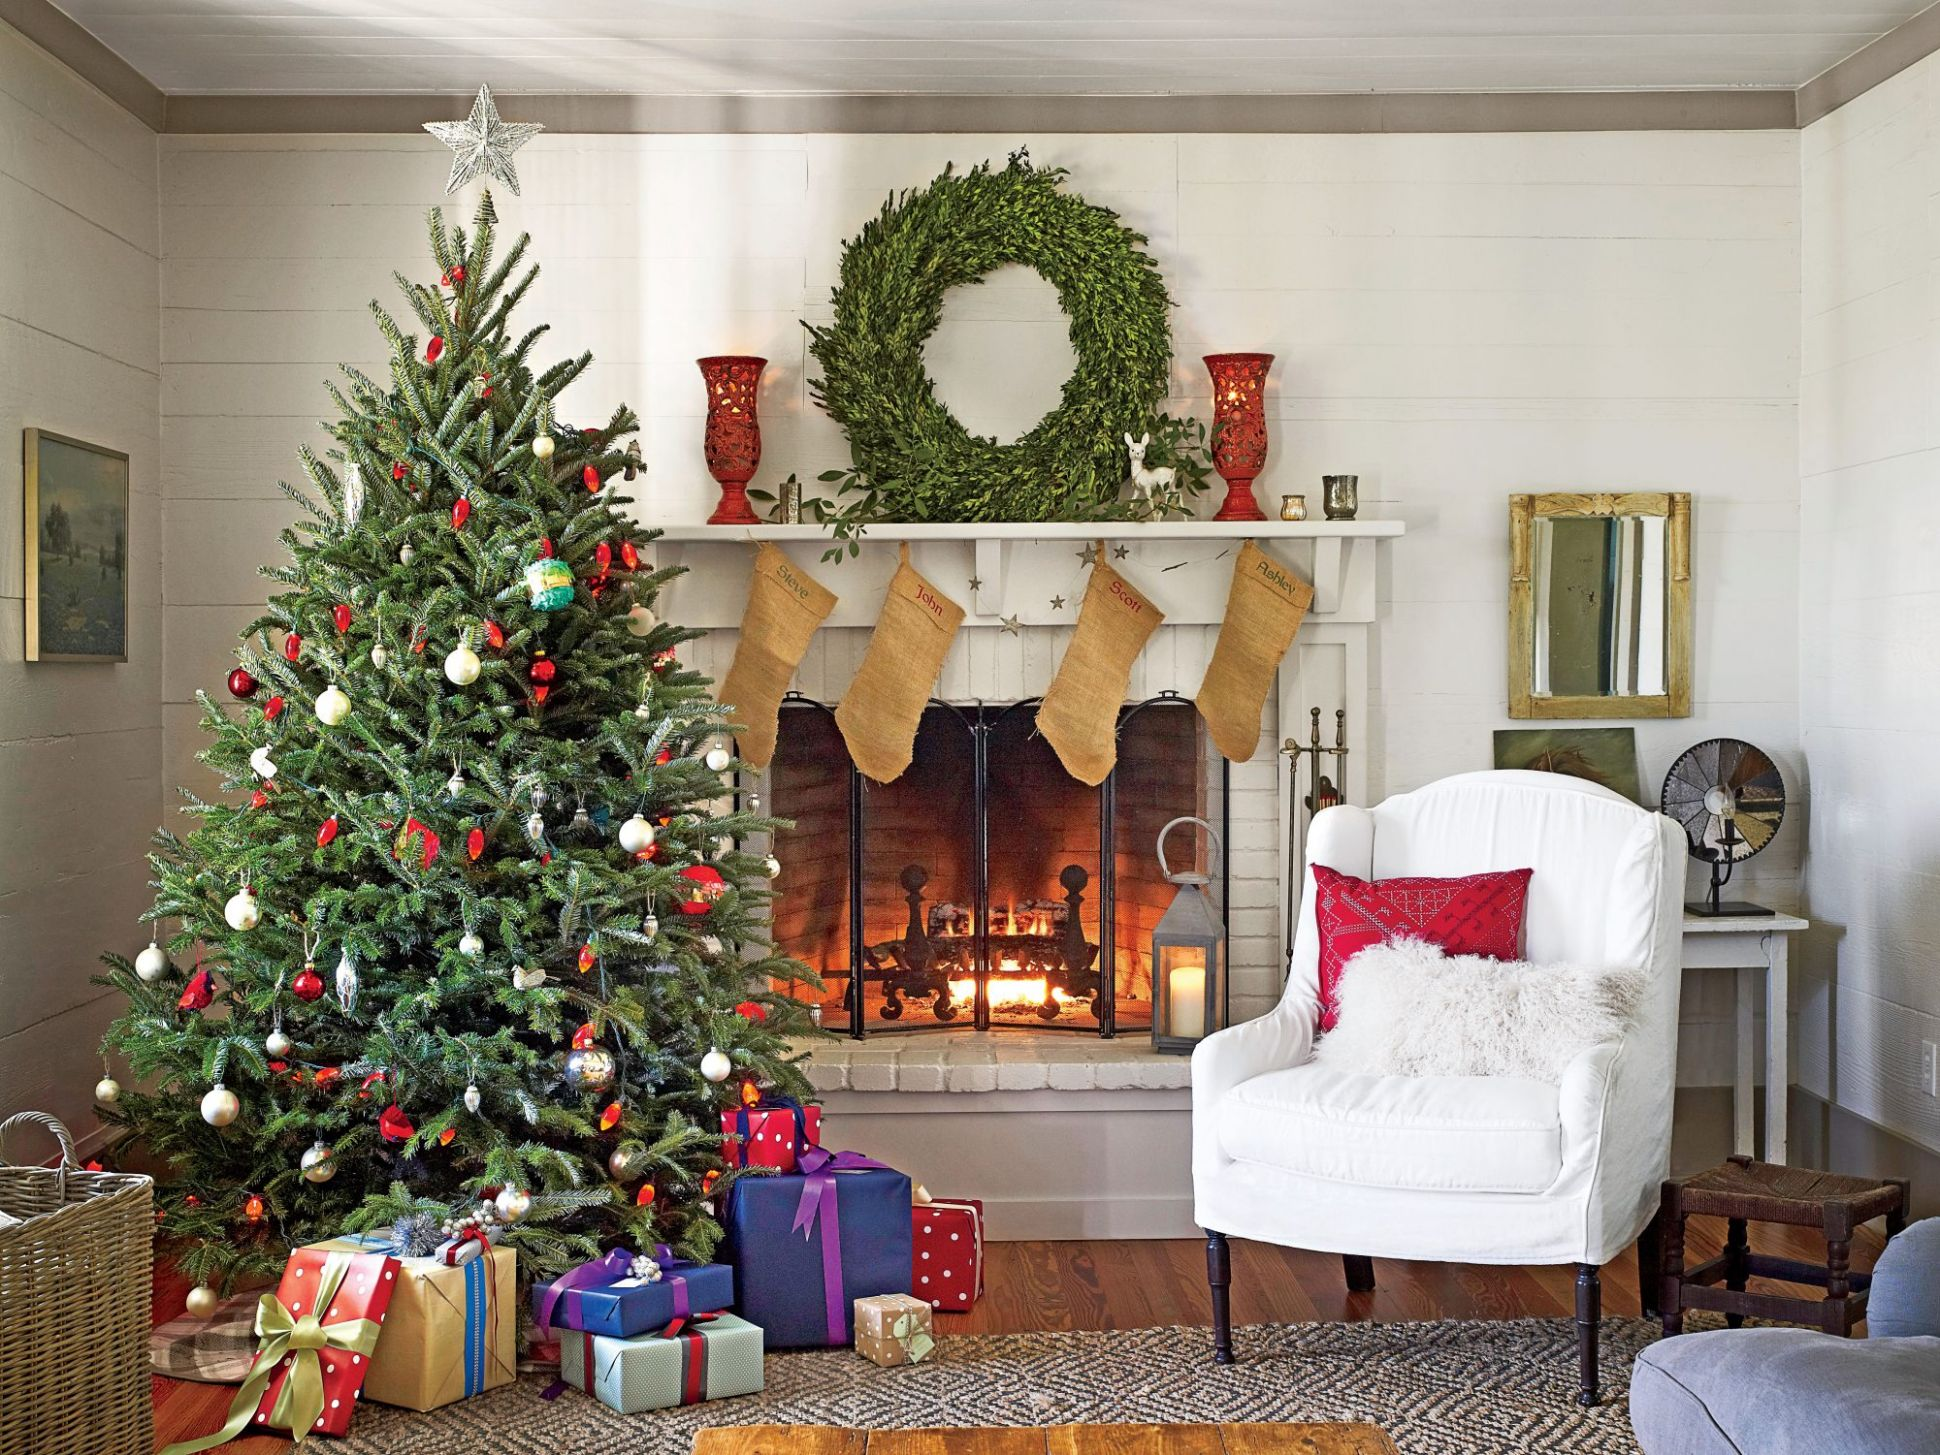 Our Favorite Living Rooms Decorated for Christmas | Southern Living - living room ideas xmas